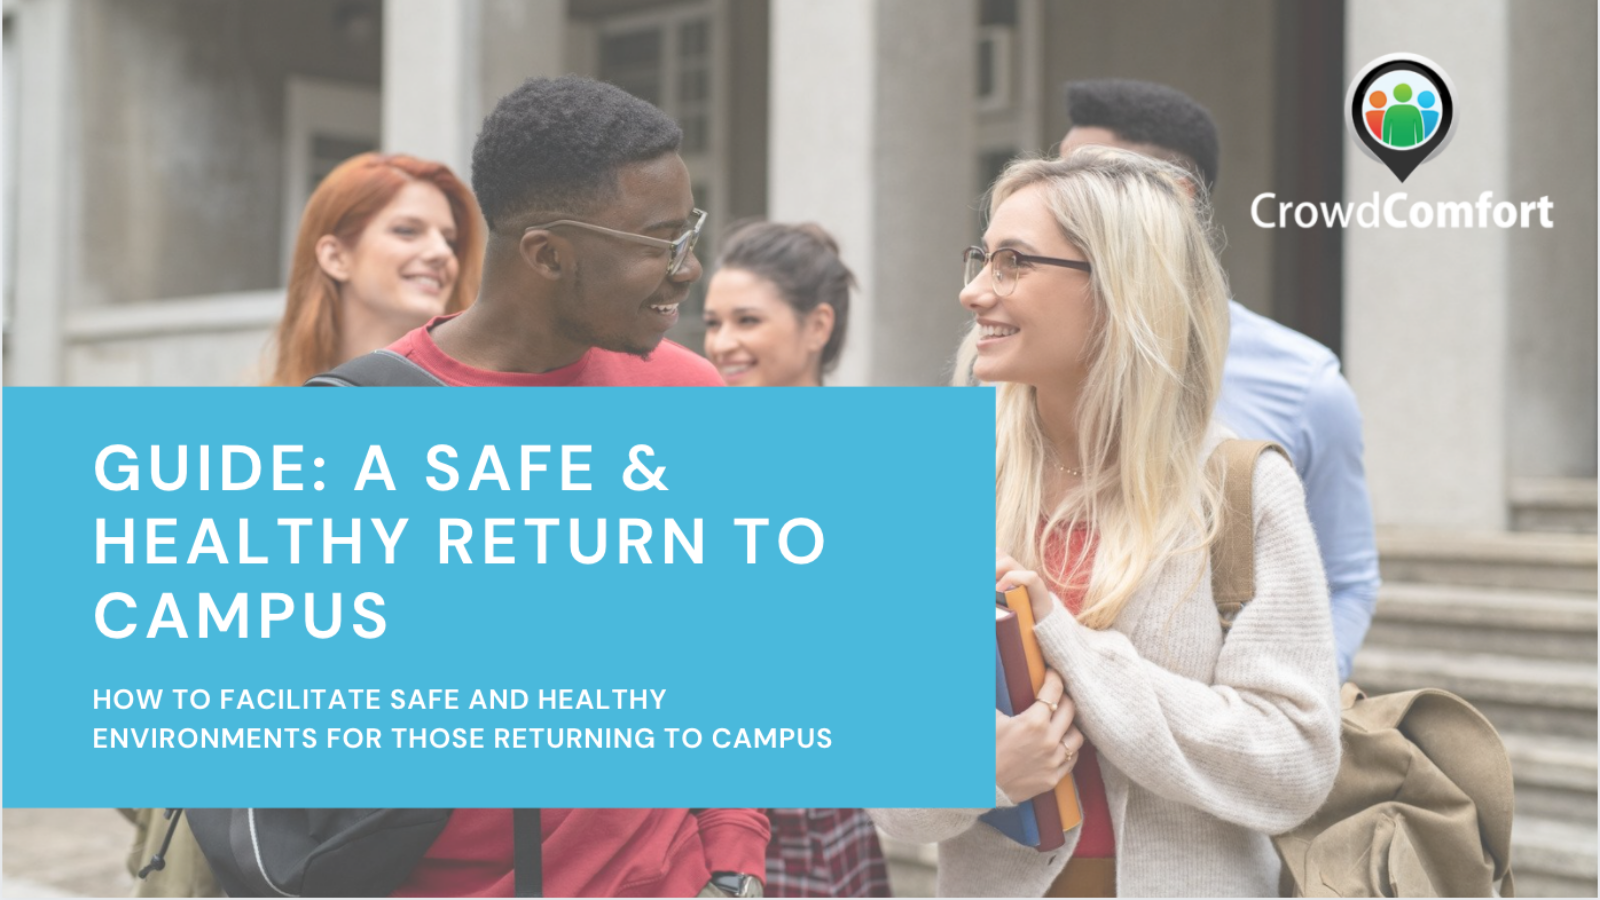 Guide: A Safe & Healthy Return to Campus